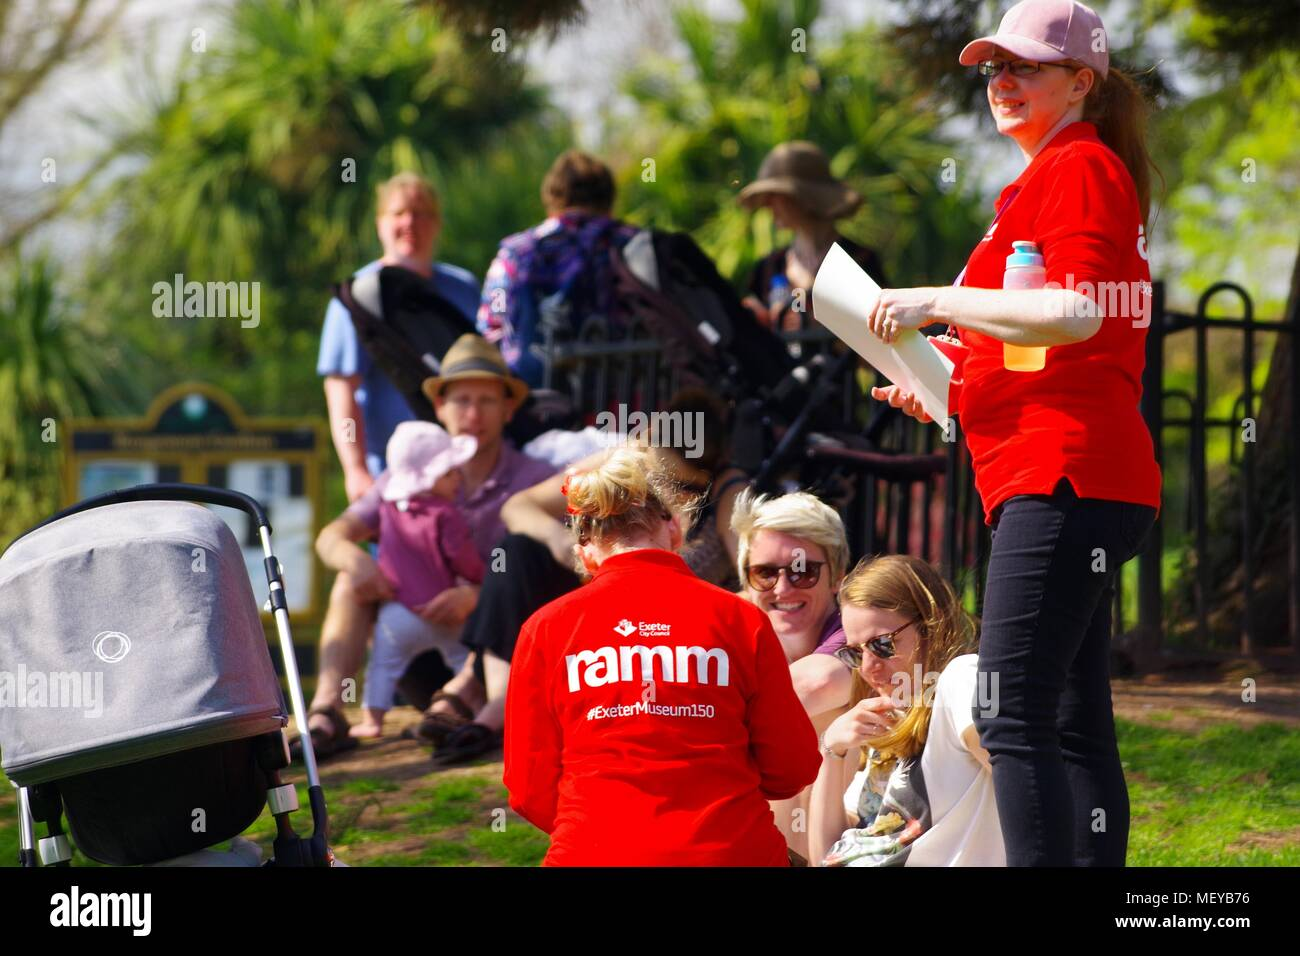 ramm Staff Organisers in Rougemont Gardens with Families Attending the Carnival of the Animals Anniversary. - Stock Image